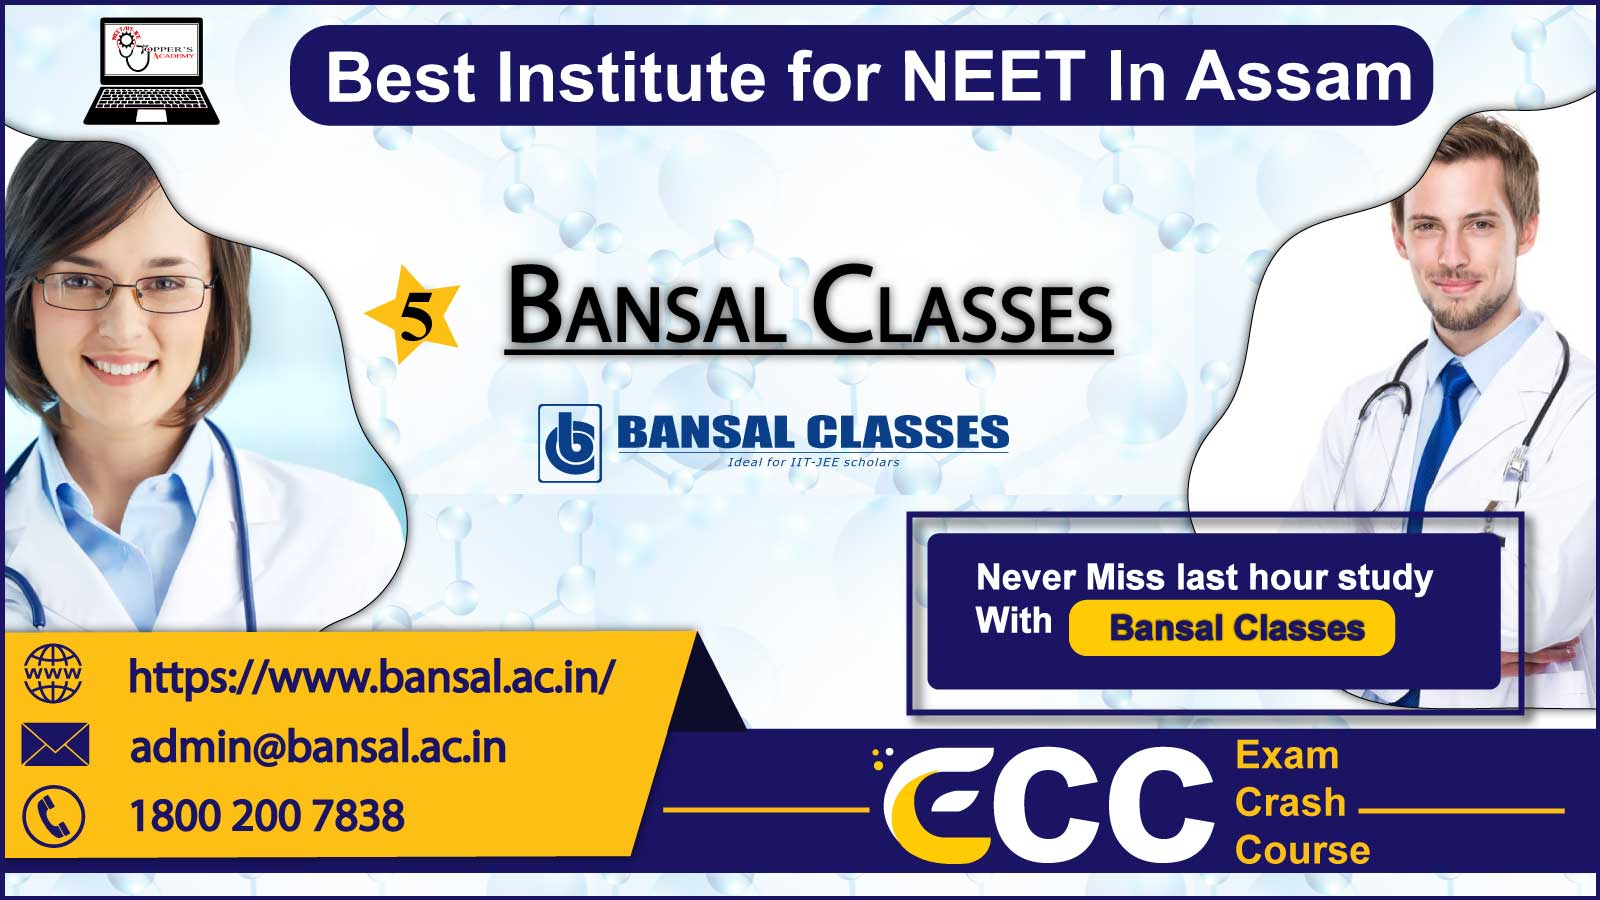 BANSAL CLASSES FOR NEET IN AASAM